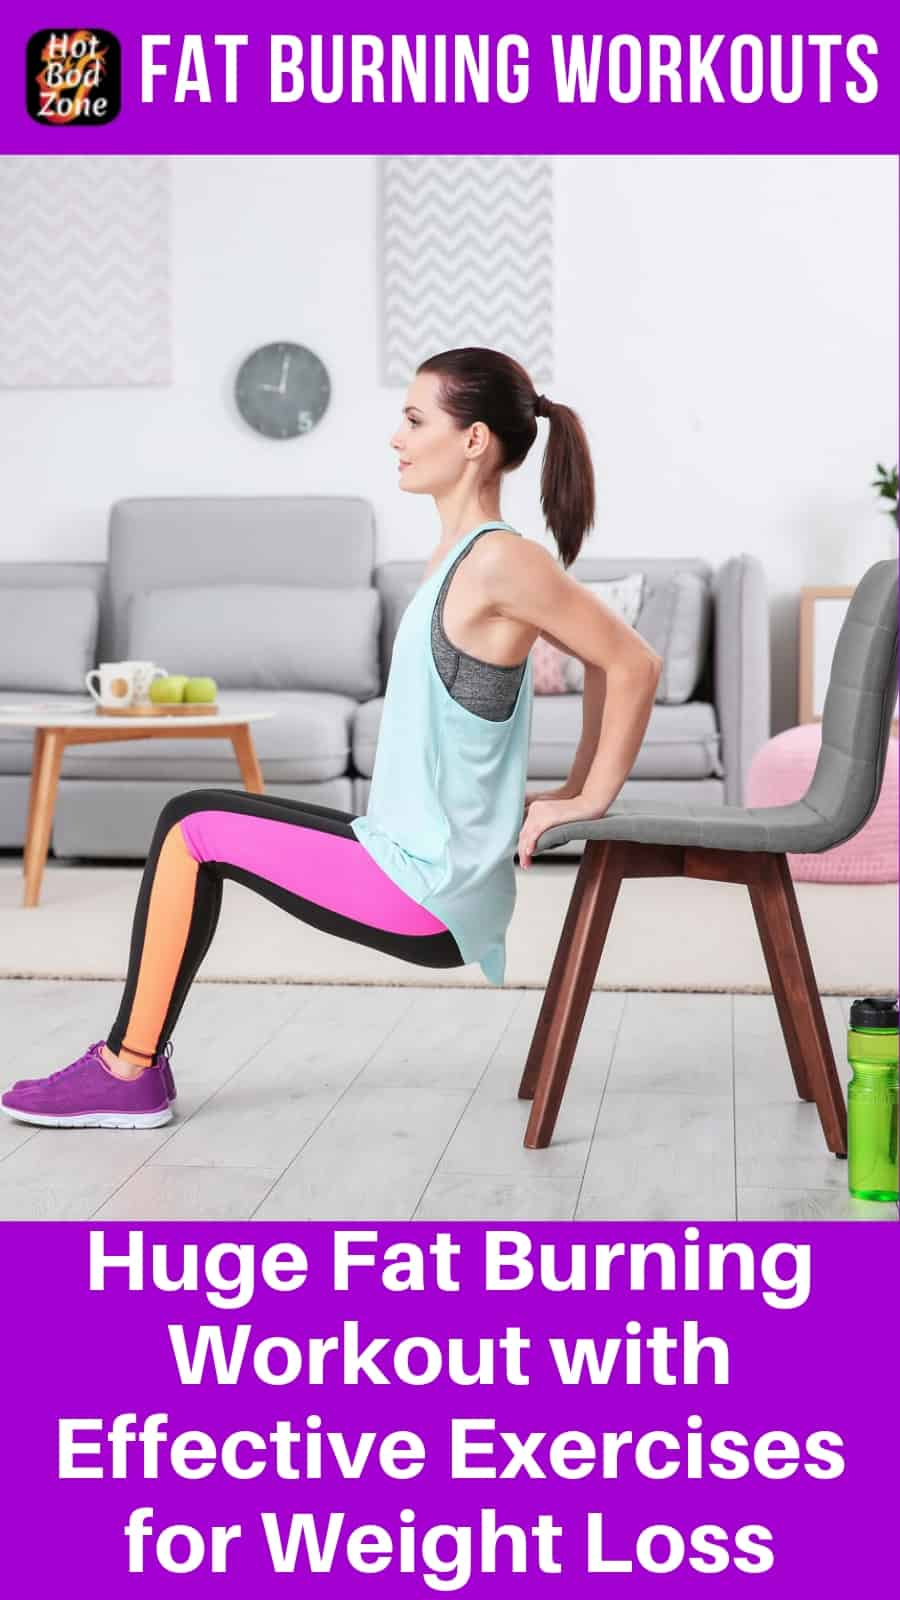 Ultimate Fat Burning Workouts For Women - Hot Bod Zone